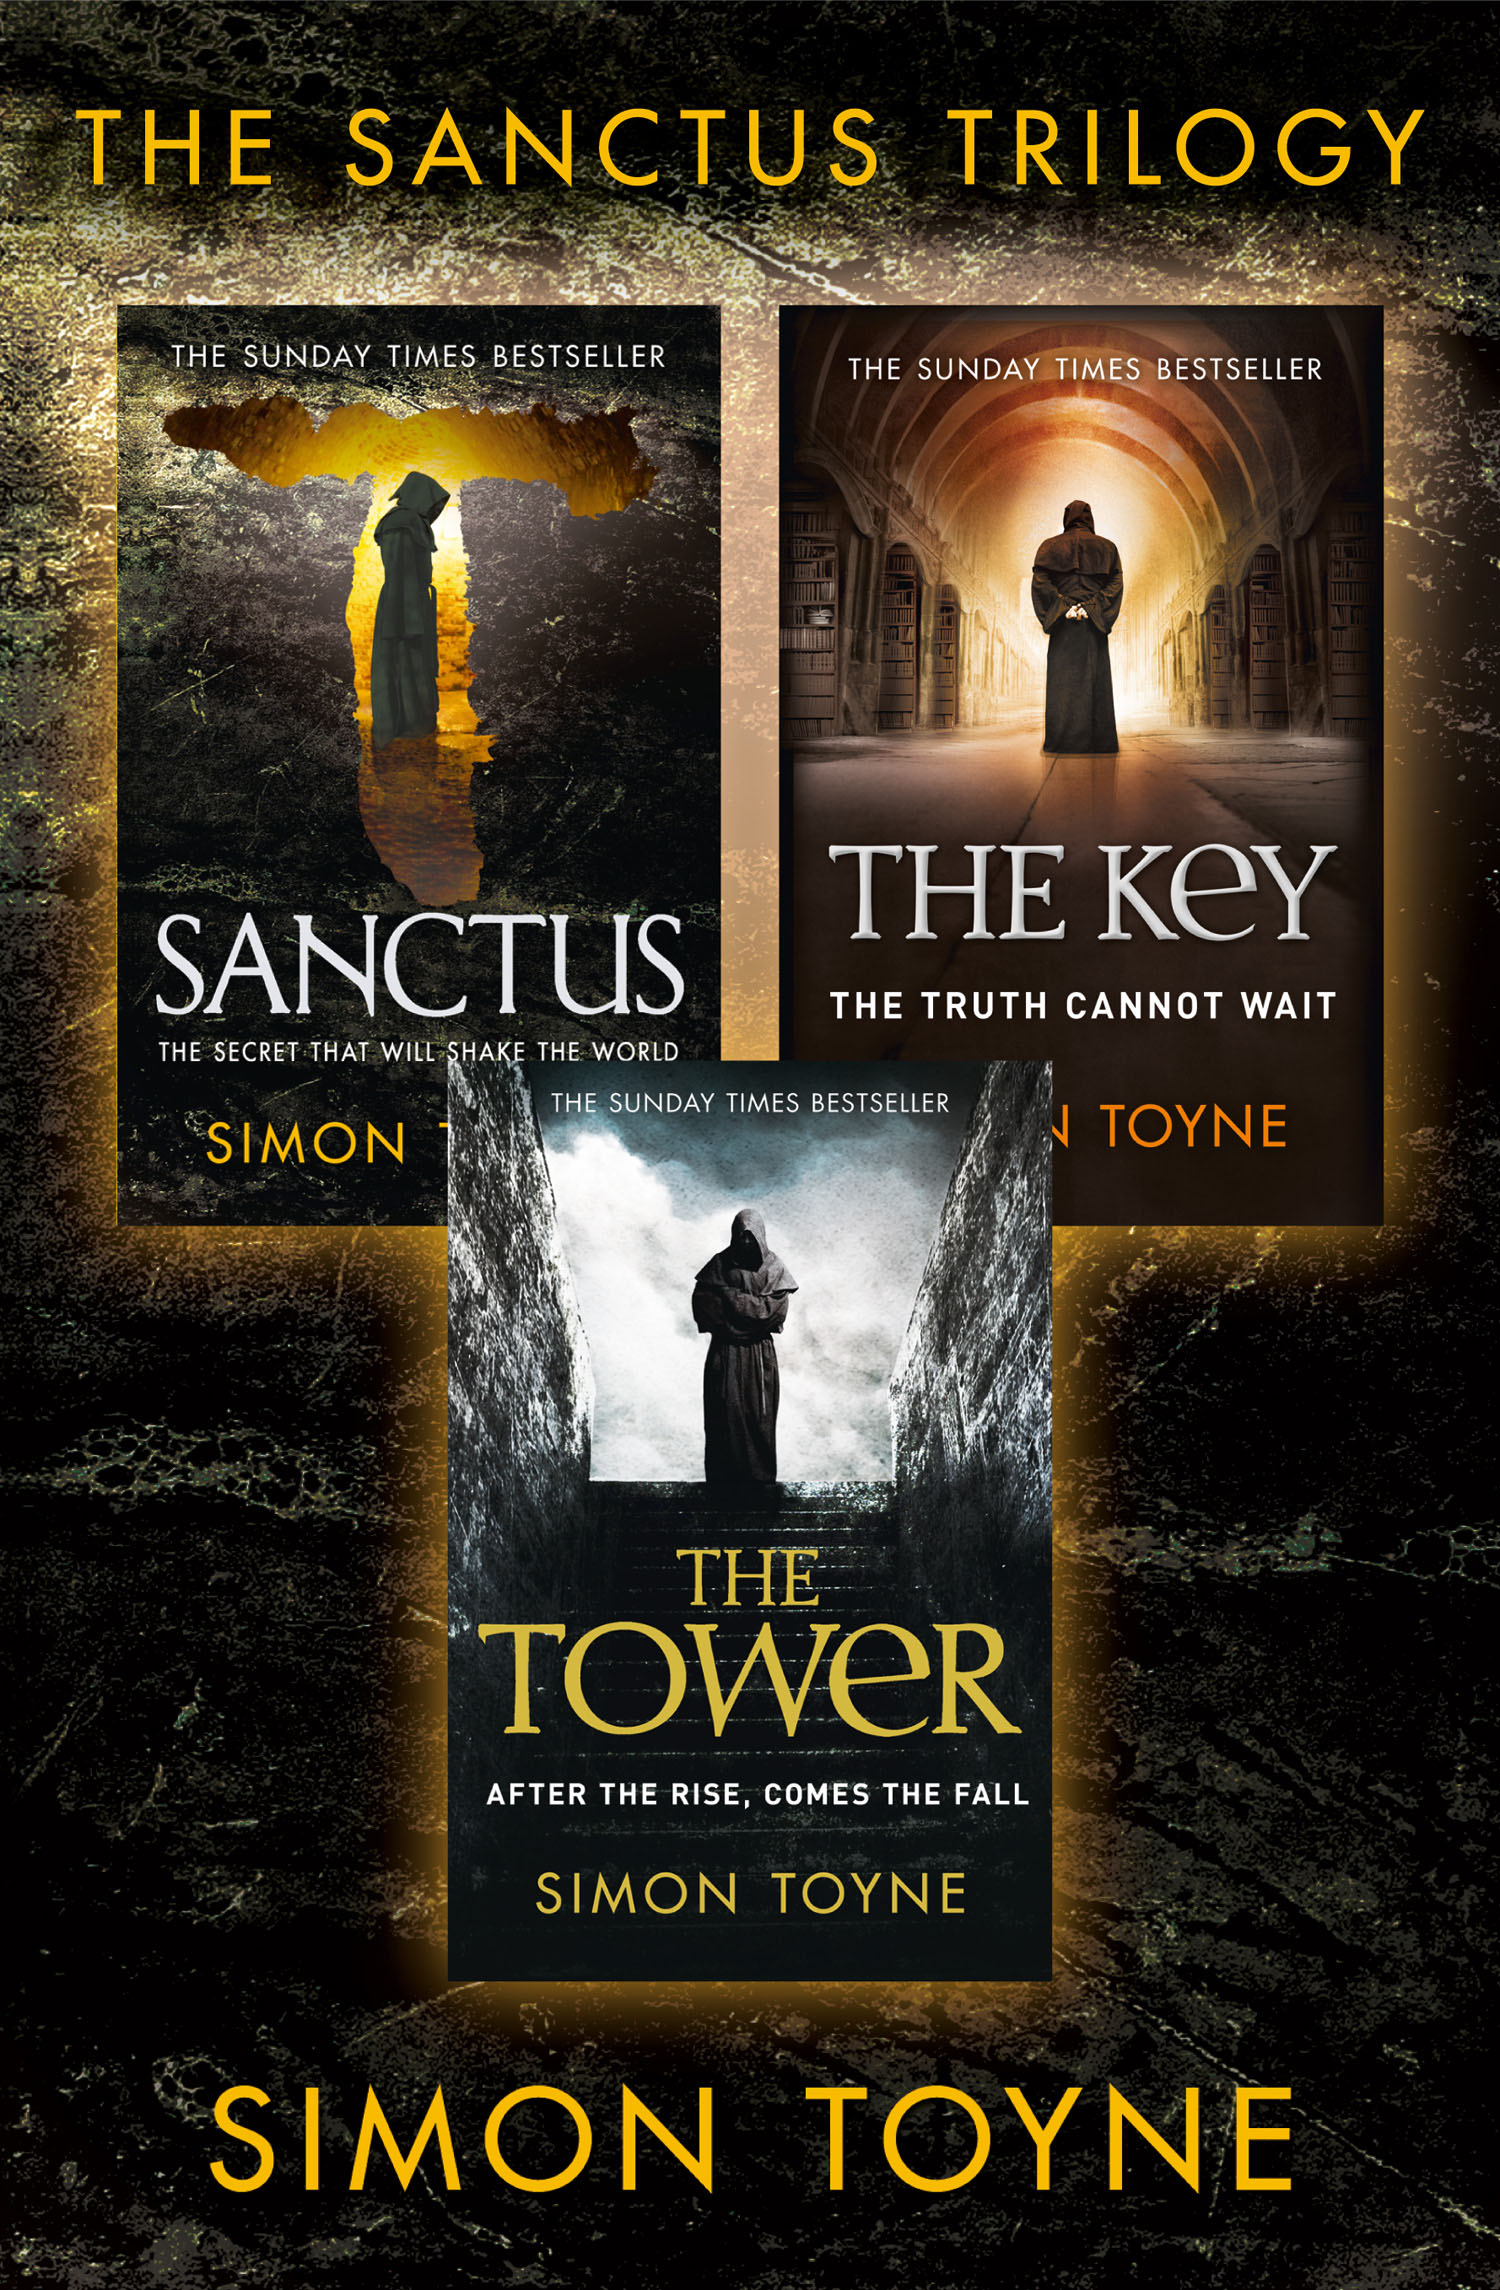 Bestselling Conspiracy Thriller Trilogy